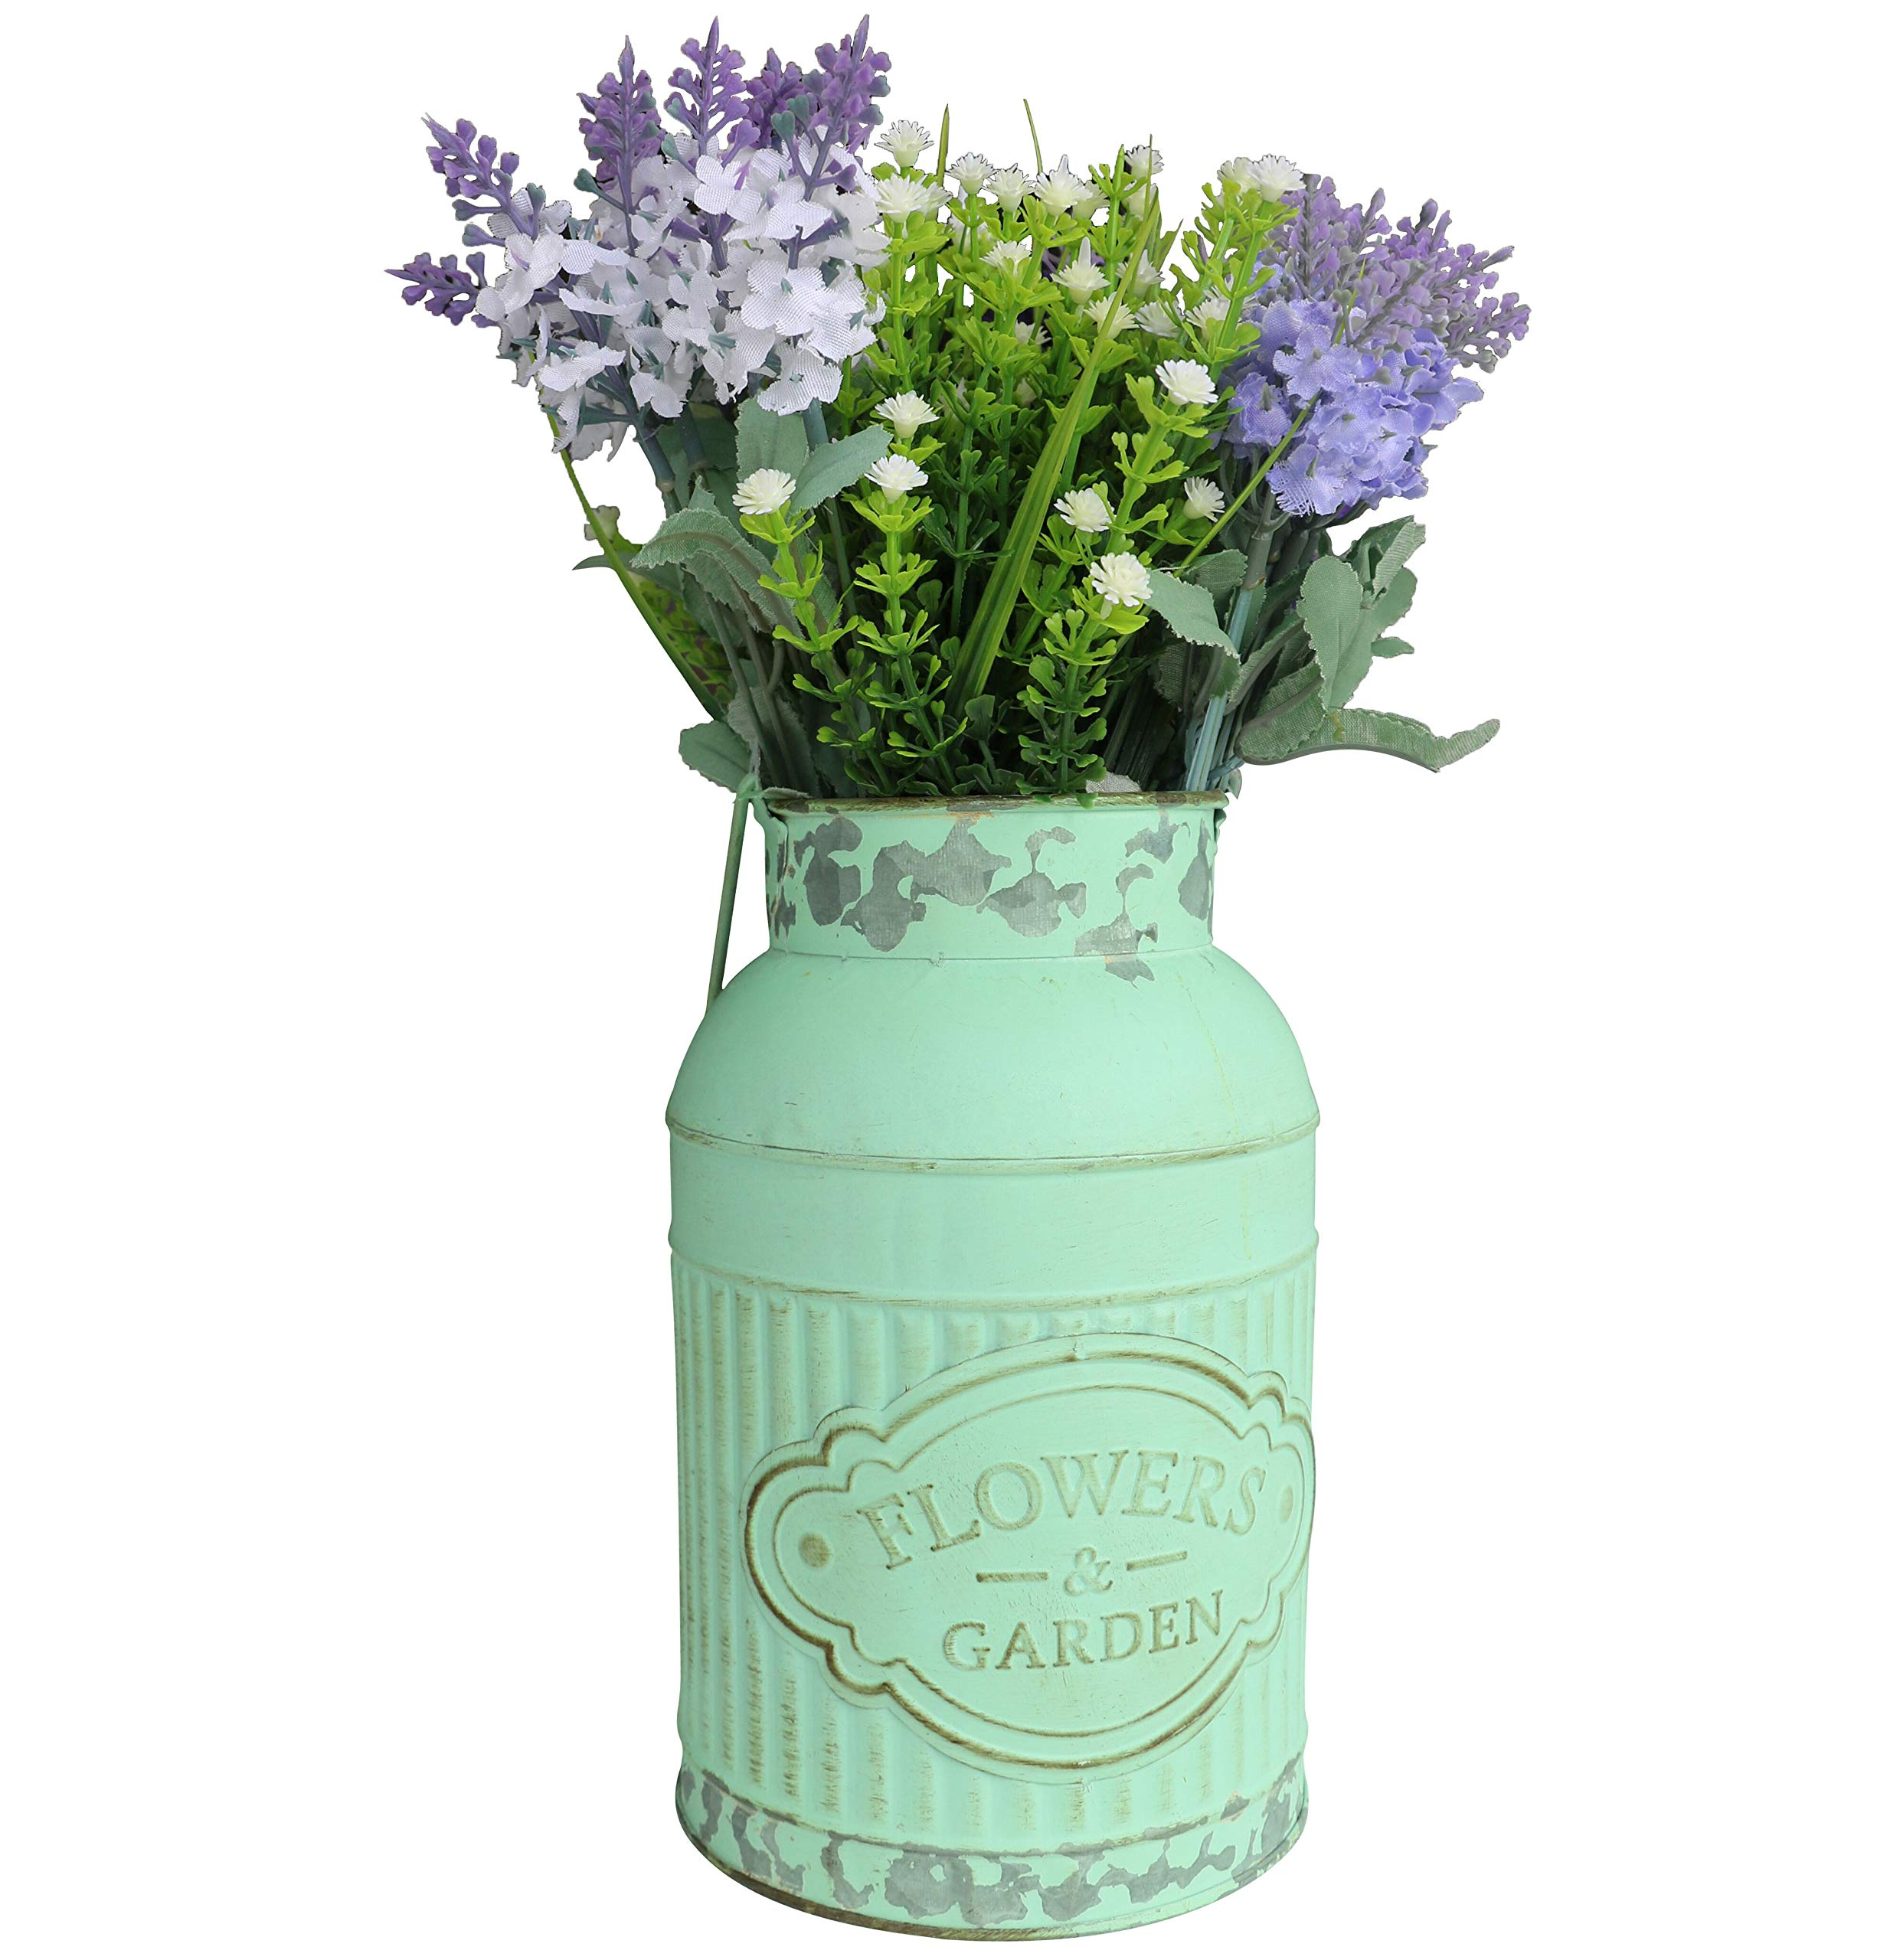 HyFanStr Shabby Chic Green Painted Milk Can Style Metal Vase Flower Pitcher Jug Pot by HyFanStr (Image #7)